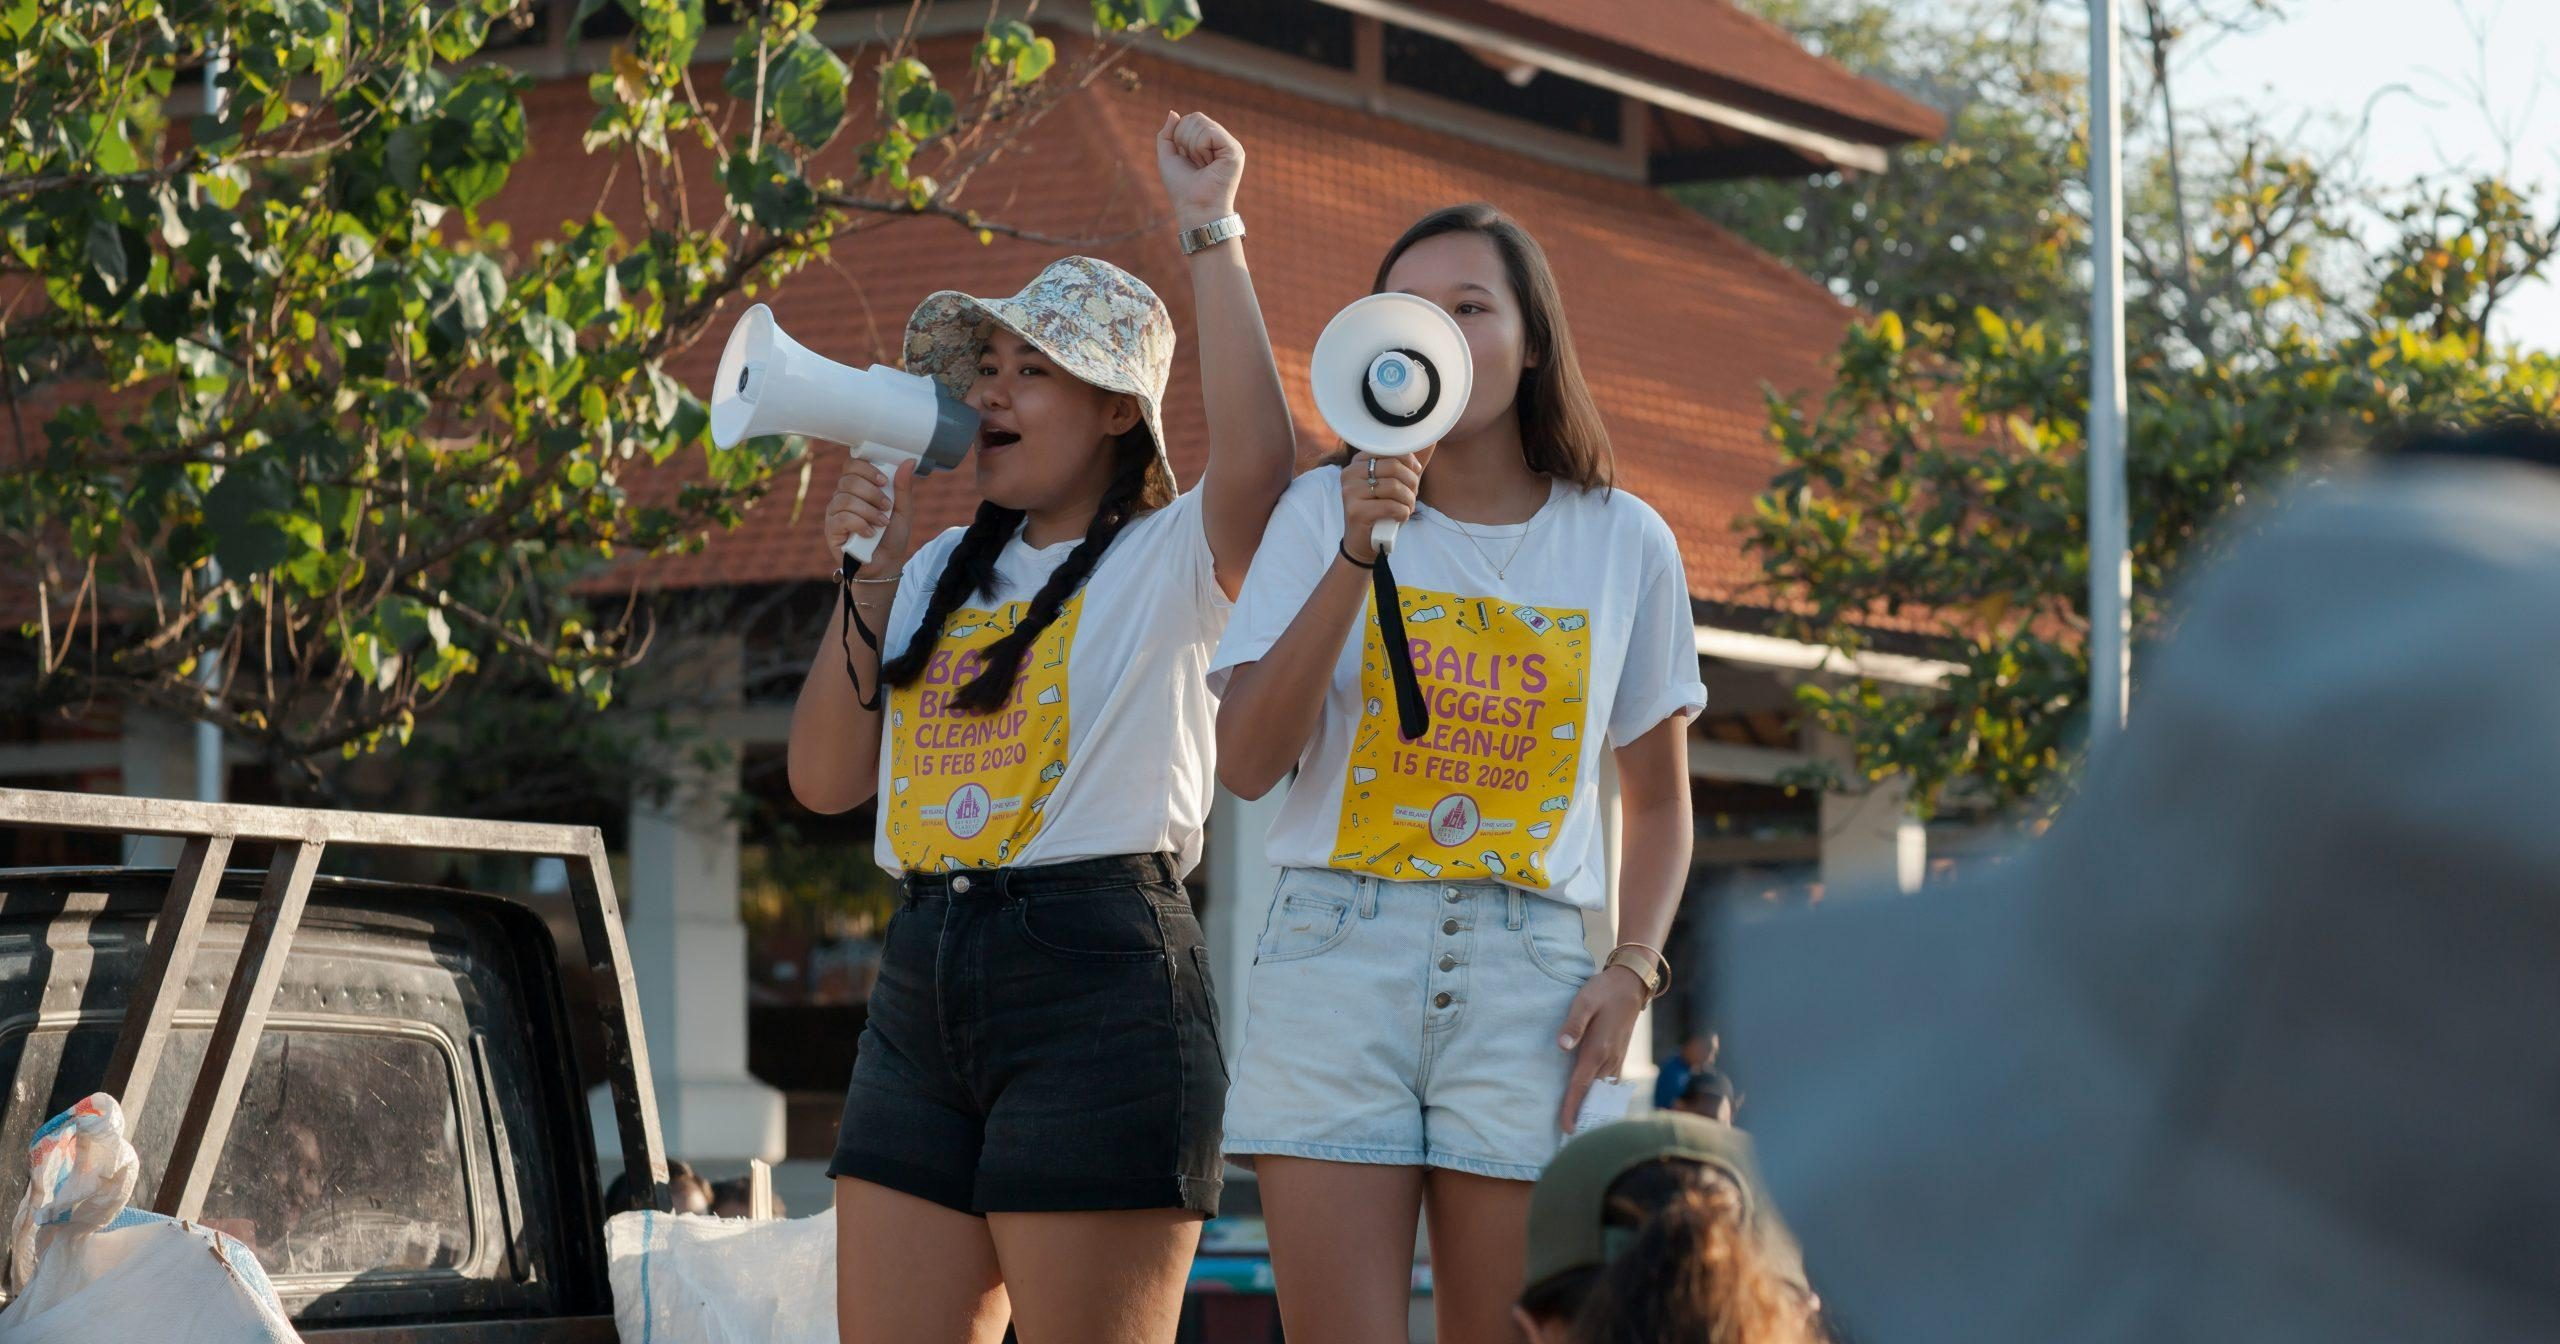 After taking on plastic, Bali sisters want the bar raised on climate action - GLOBAL HEROES MAGAZINE